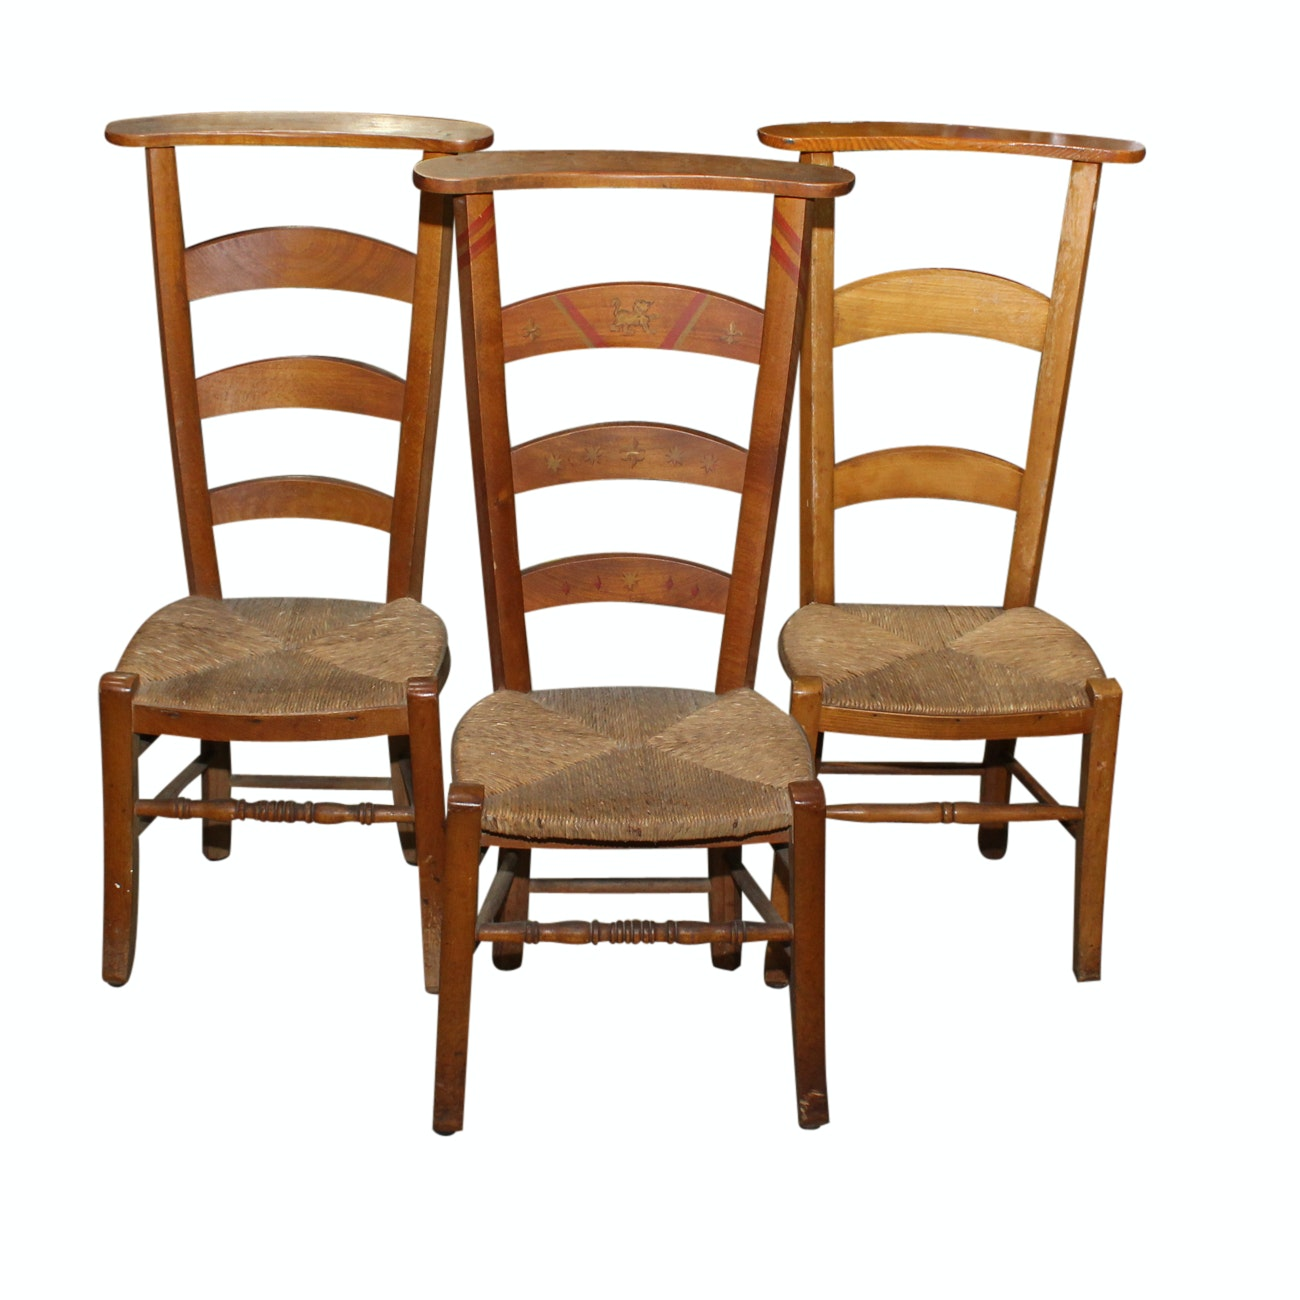 Three French Provincial Beech Prayer Chairs, One Paint-Decorated, 20th Century